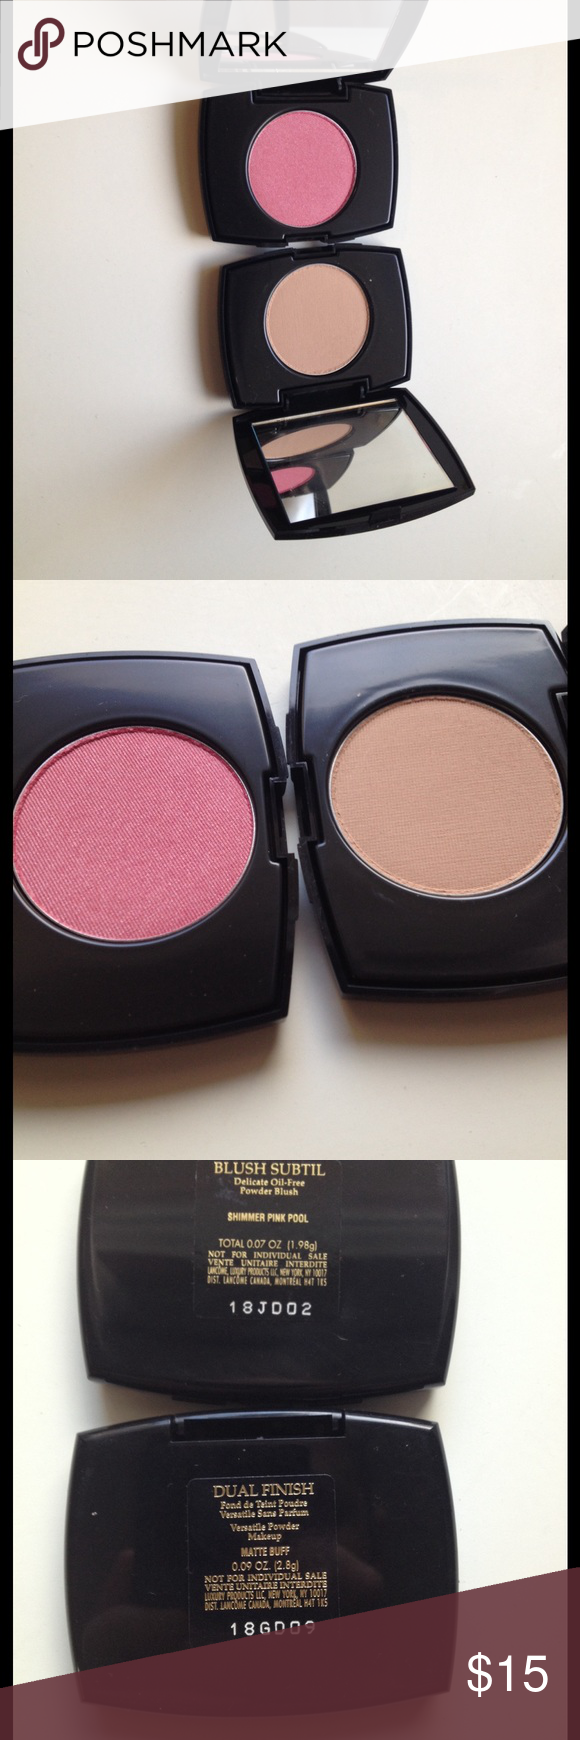 Lancôme Selling Lancôme blush subtle delicate oil free powder blush in shade shimmer pink pool size is 0.07 oz (1.98g) AND dual finish versatile powder makeup in shade matte buff size is also 0.07 oz (1.98g) TOGETHER will not sell separate. Brand new never used. No trades please. These are not full size so they don't come with a brush. Lancome Makeup Blush